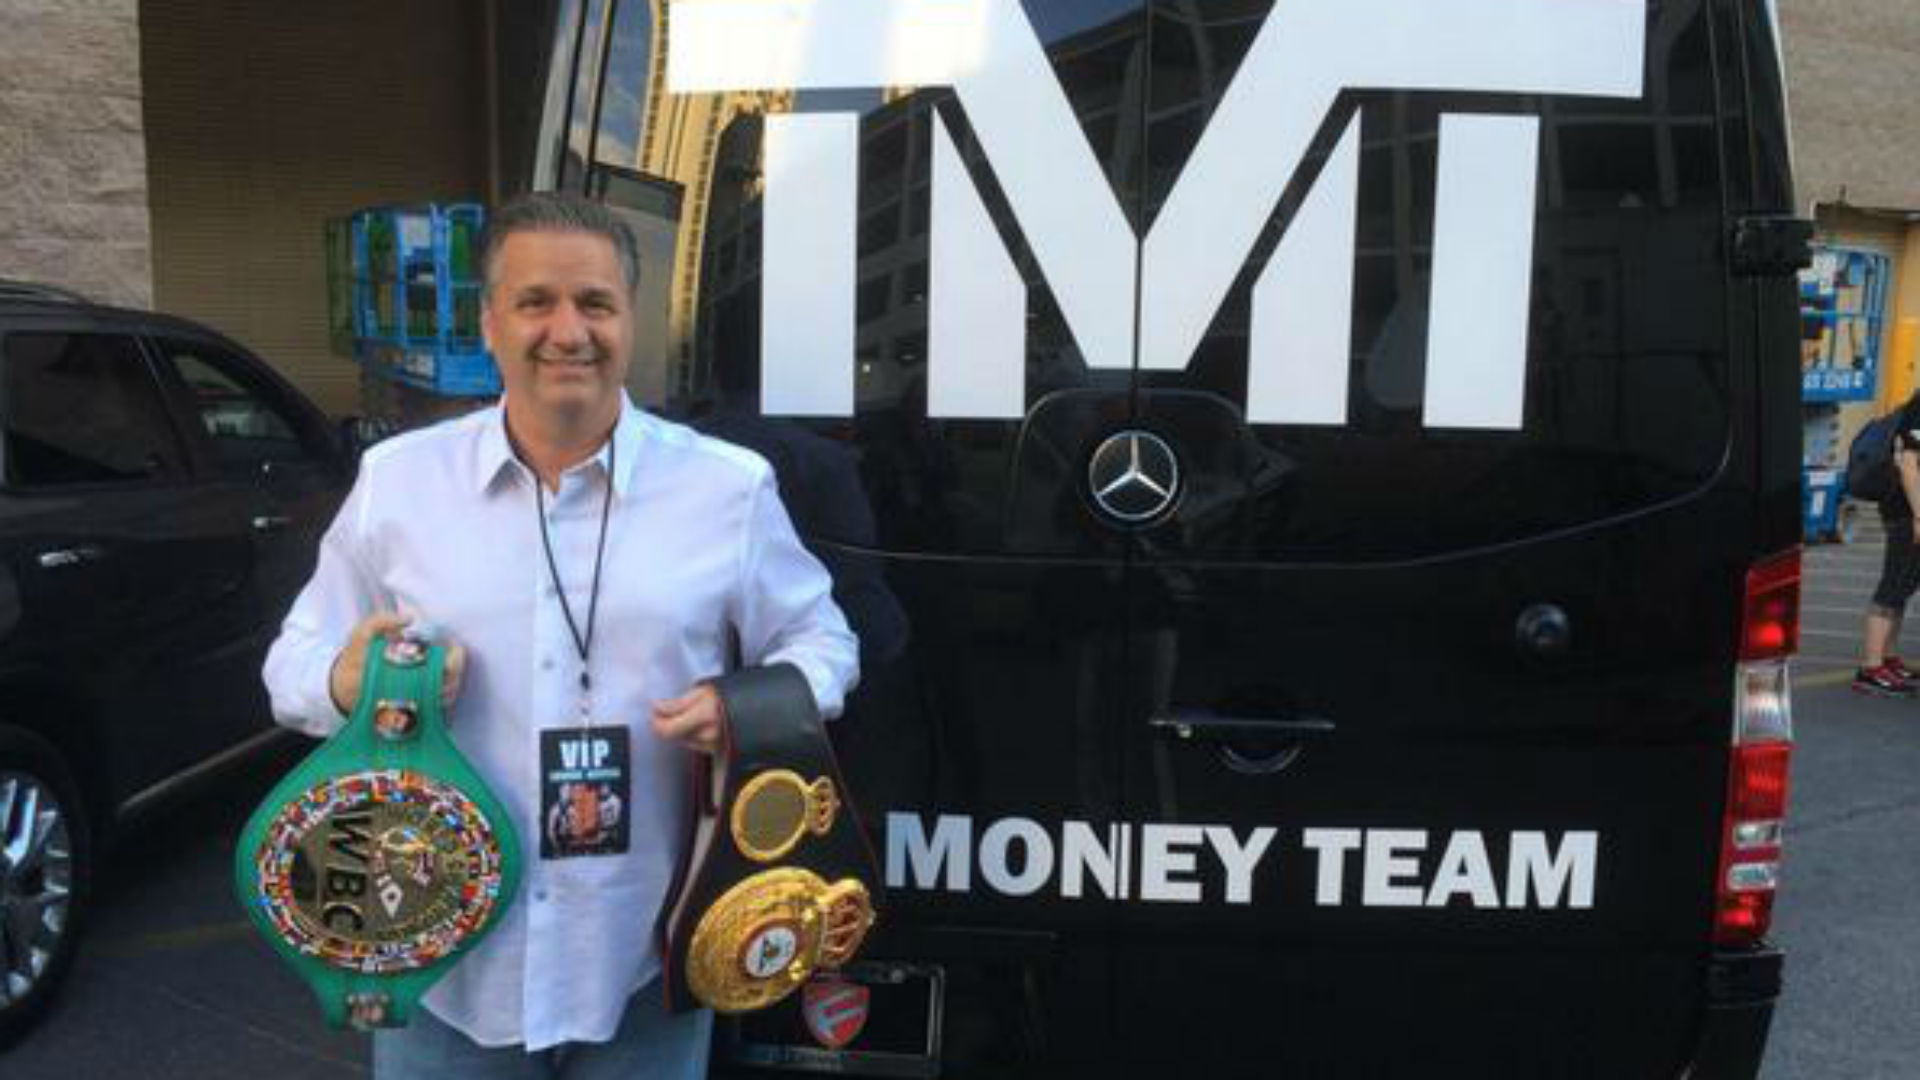 John Calipari is basically part of Floyd Mayweather's 'Money Team'